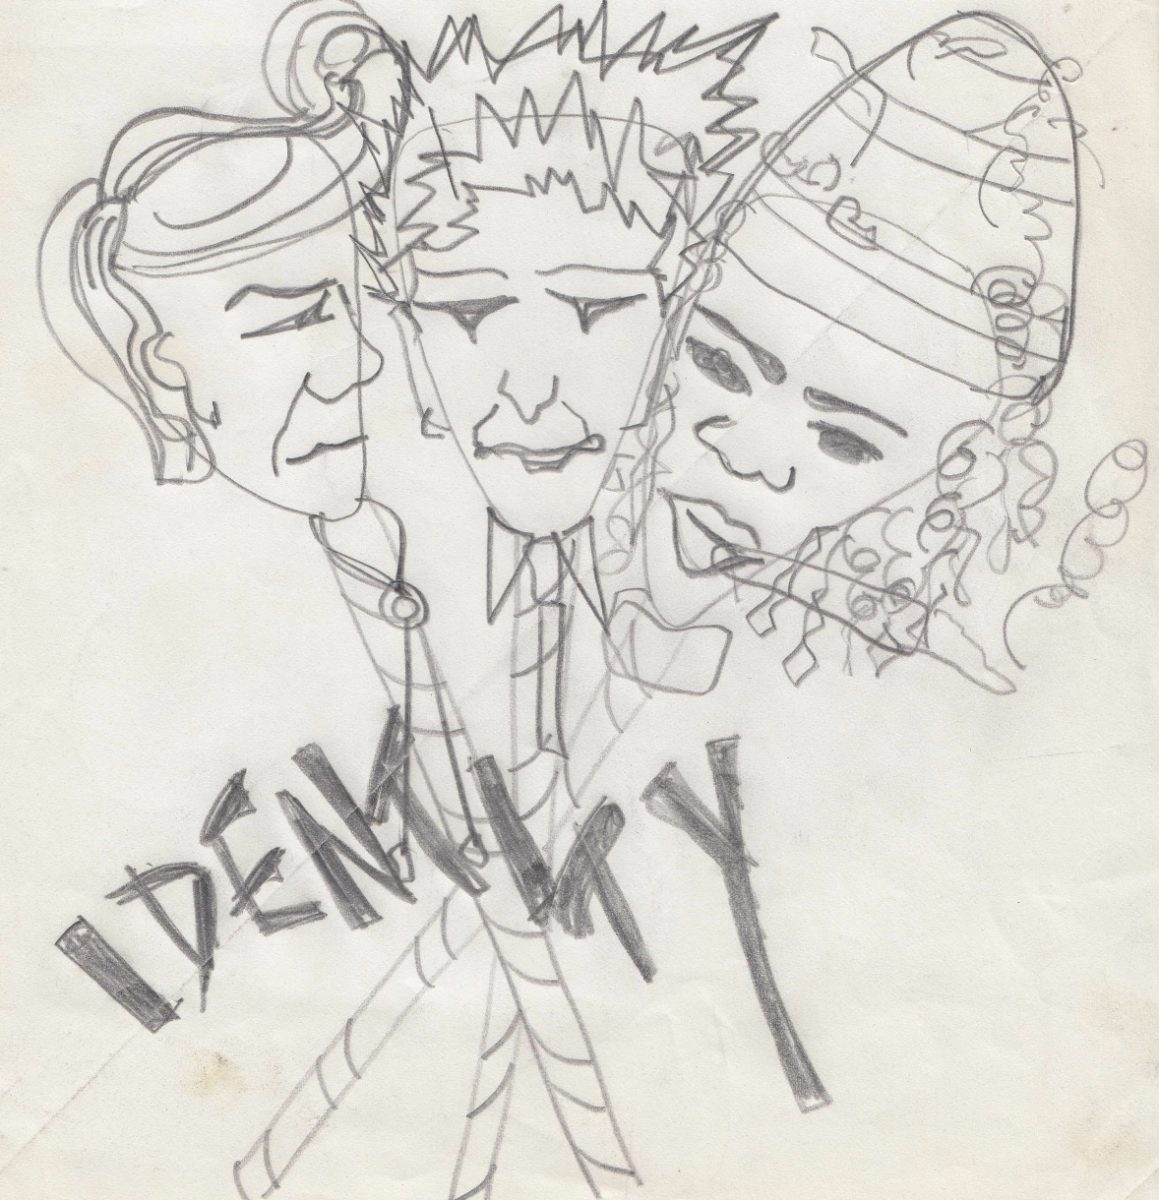 Poly Styrene's artwork for Identity